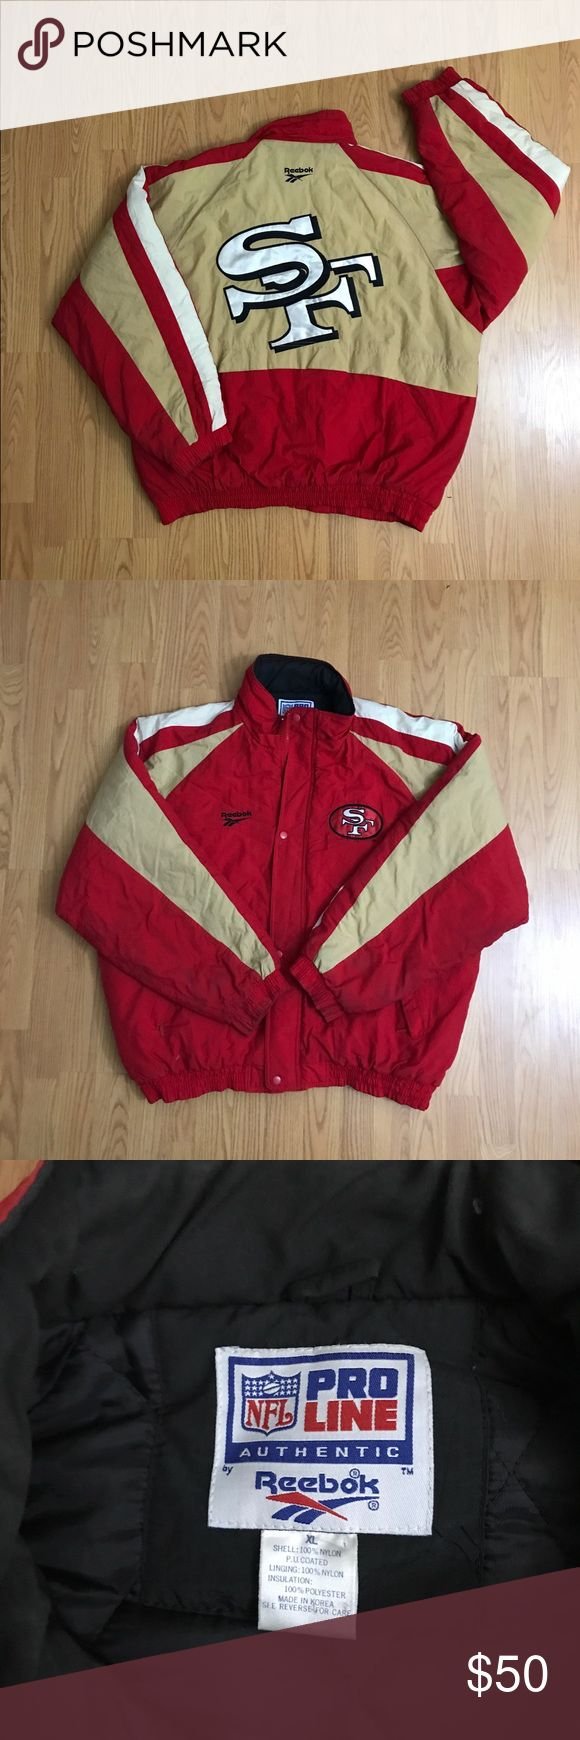 Vintage Reebok 49ers Jacket This thing is insane. Super clean all around, and dope embroidering on the back. Fits L- XL Reebok Jackets & Coats Bomber & Varsity